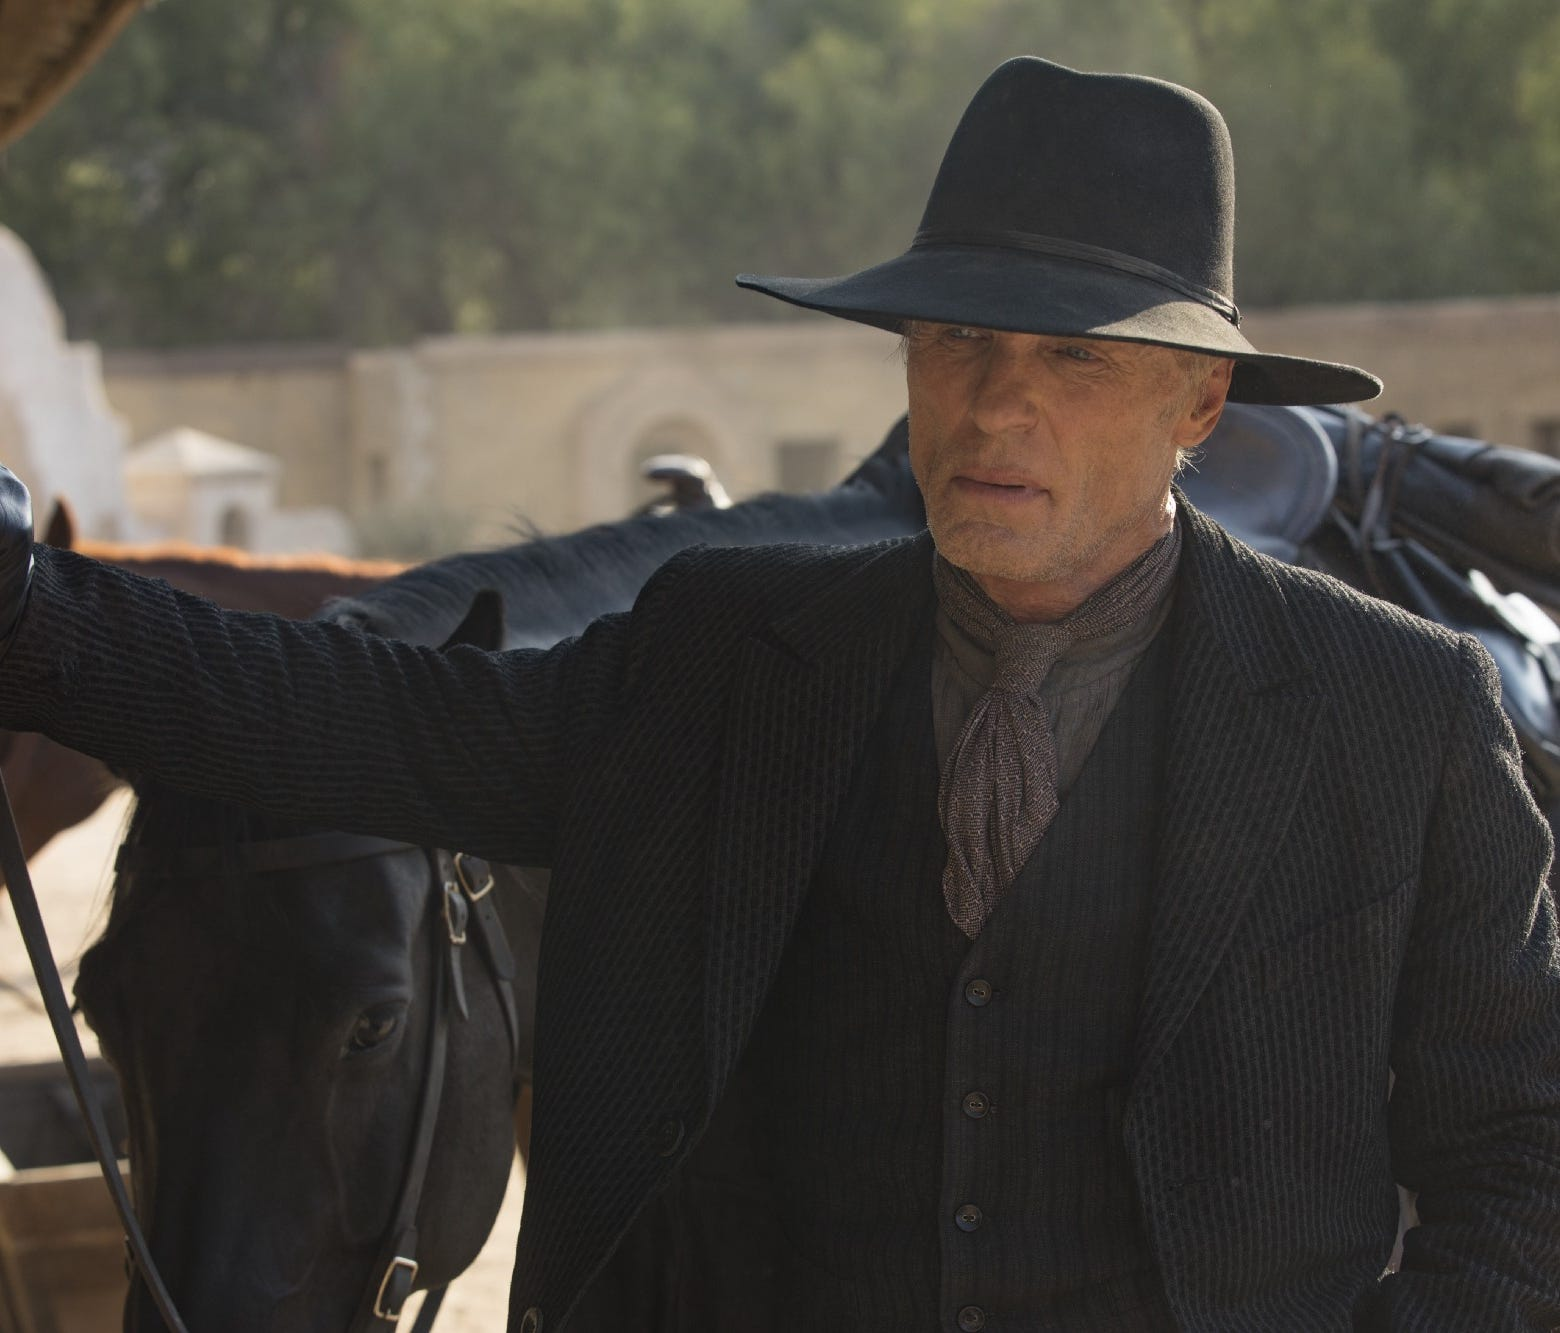 The Man in Black/William (Ed Harris) in